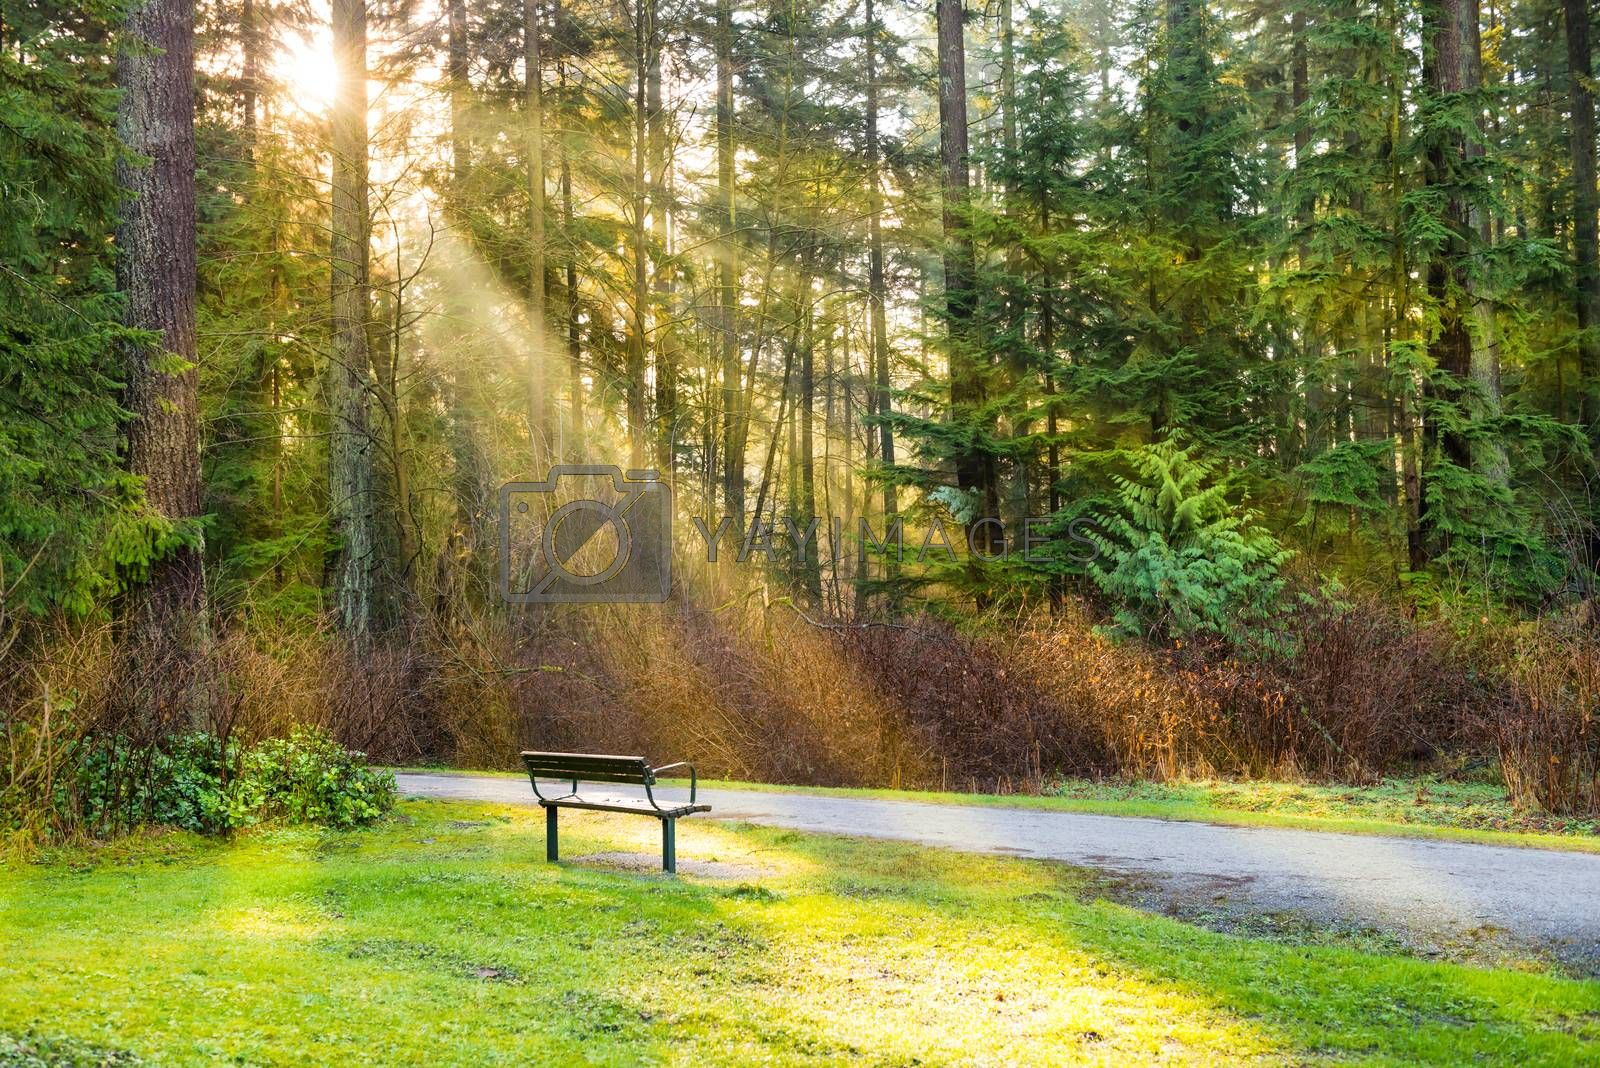 Bench in the green city park by vapi